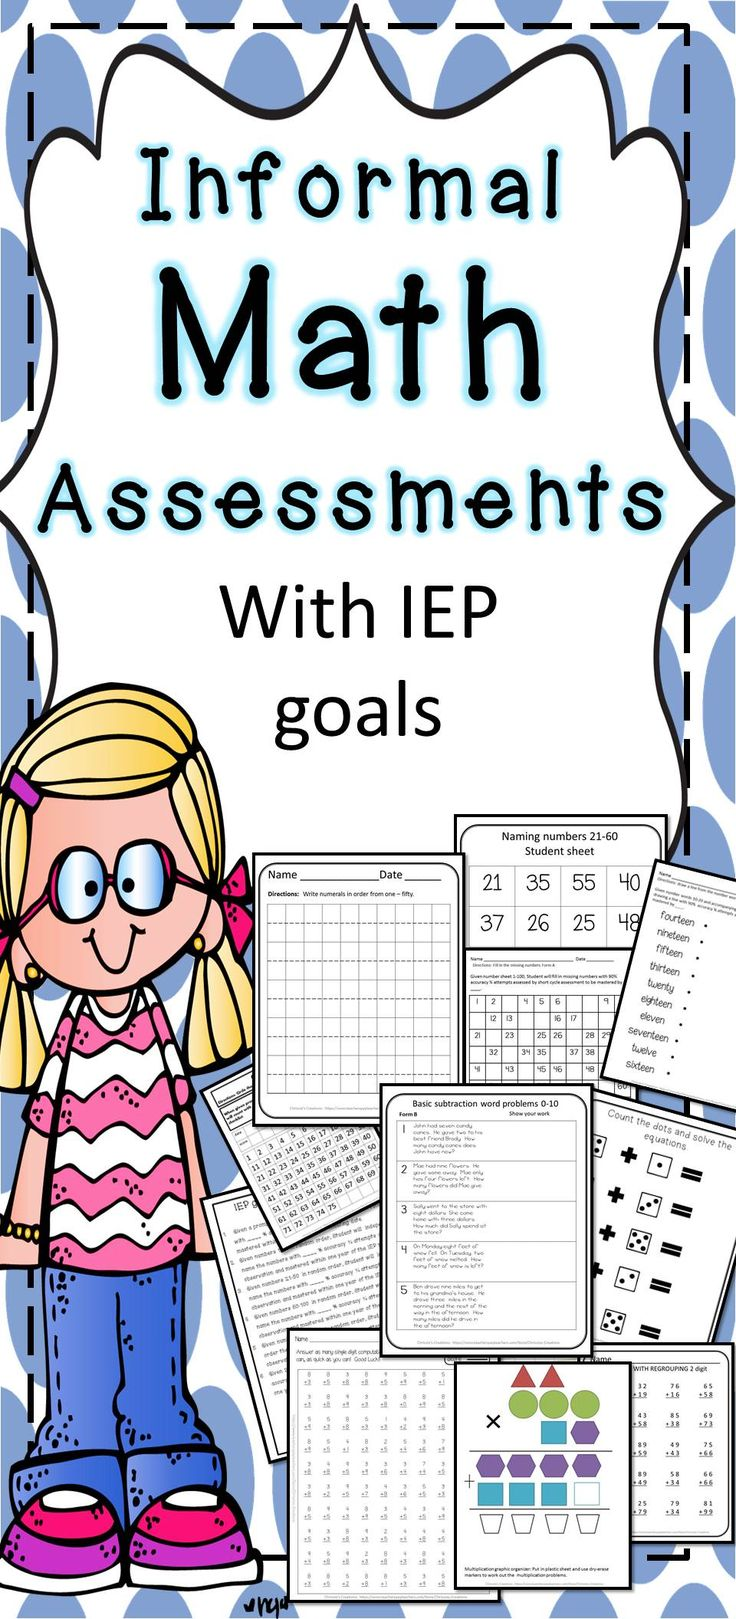 ideas about math help websites life hacks life math assessments great for back to school academic measuring these assessments are great for progress